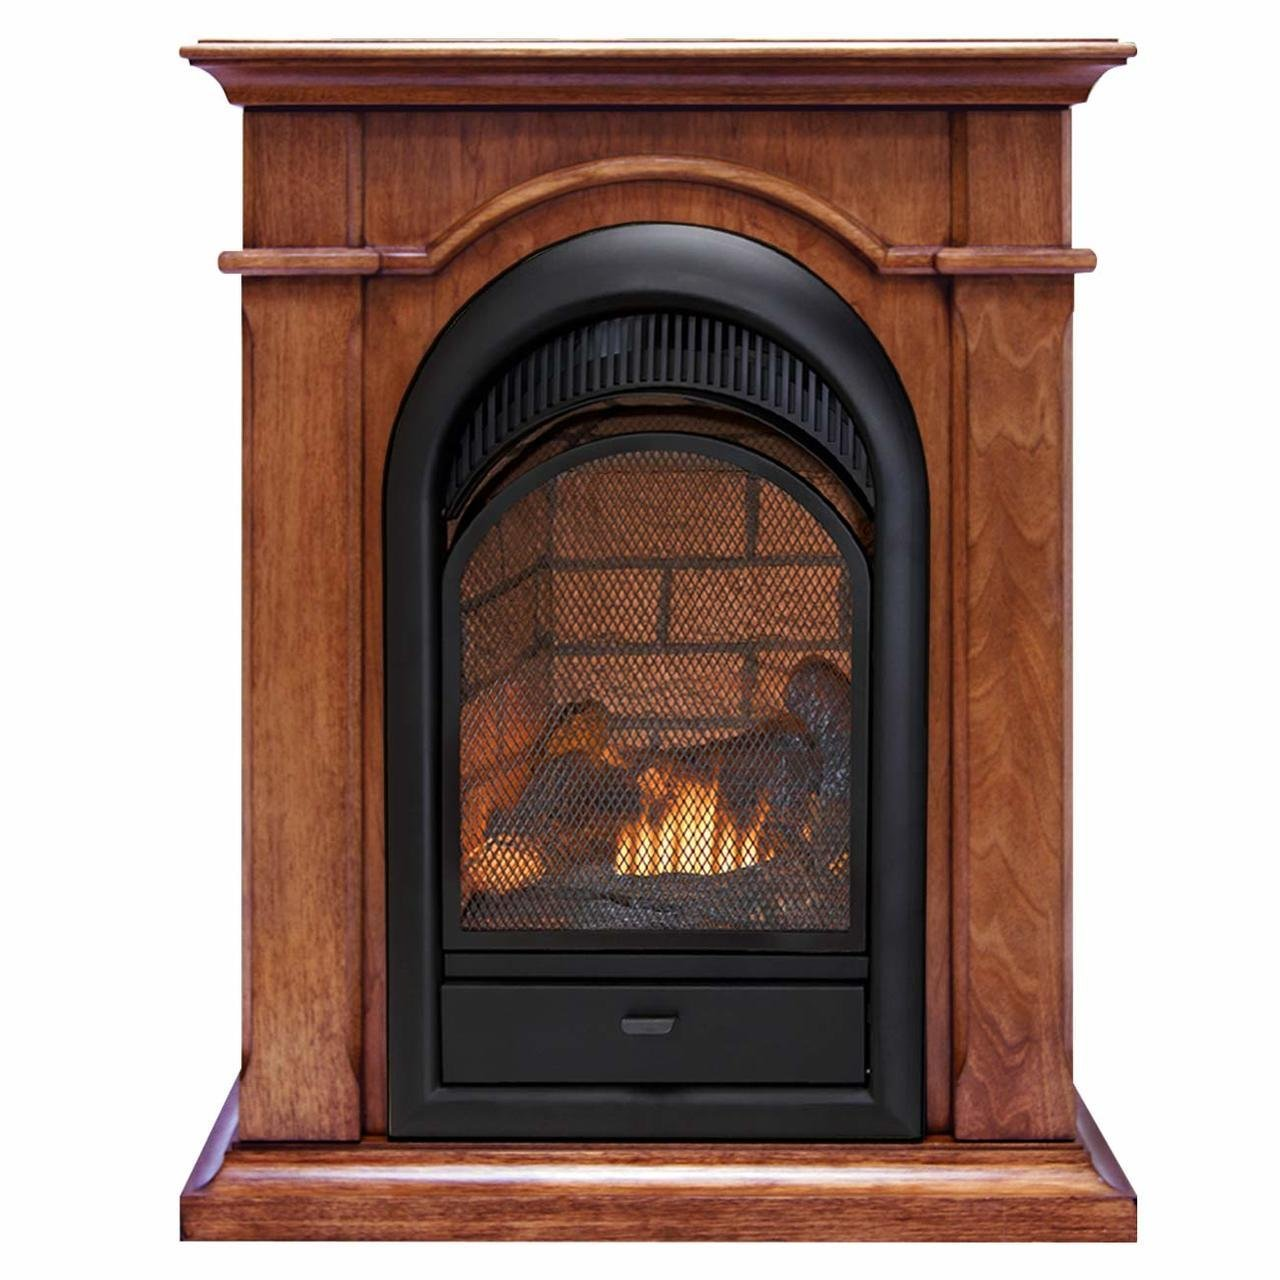 Duluth Forge Dual Fuel Ventless Fireplace With Mantel - 15,000 BTU, T-Stat, Apple Spice Mantel by Duluth Forge